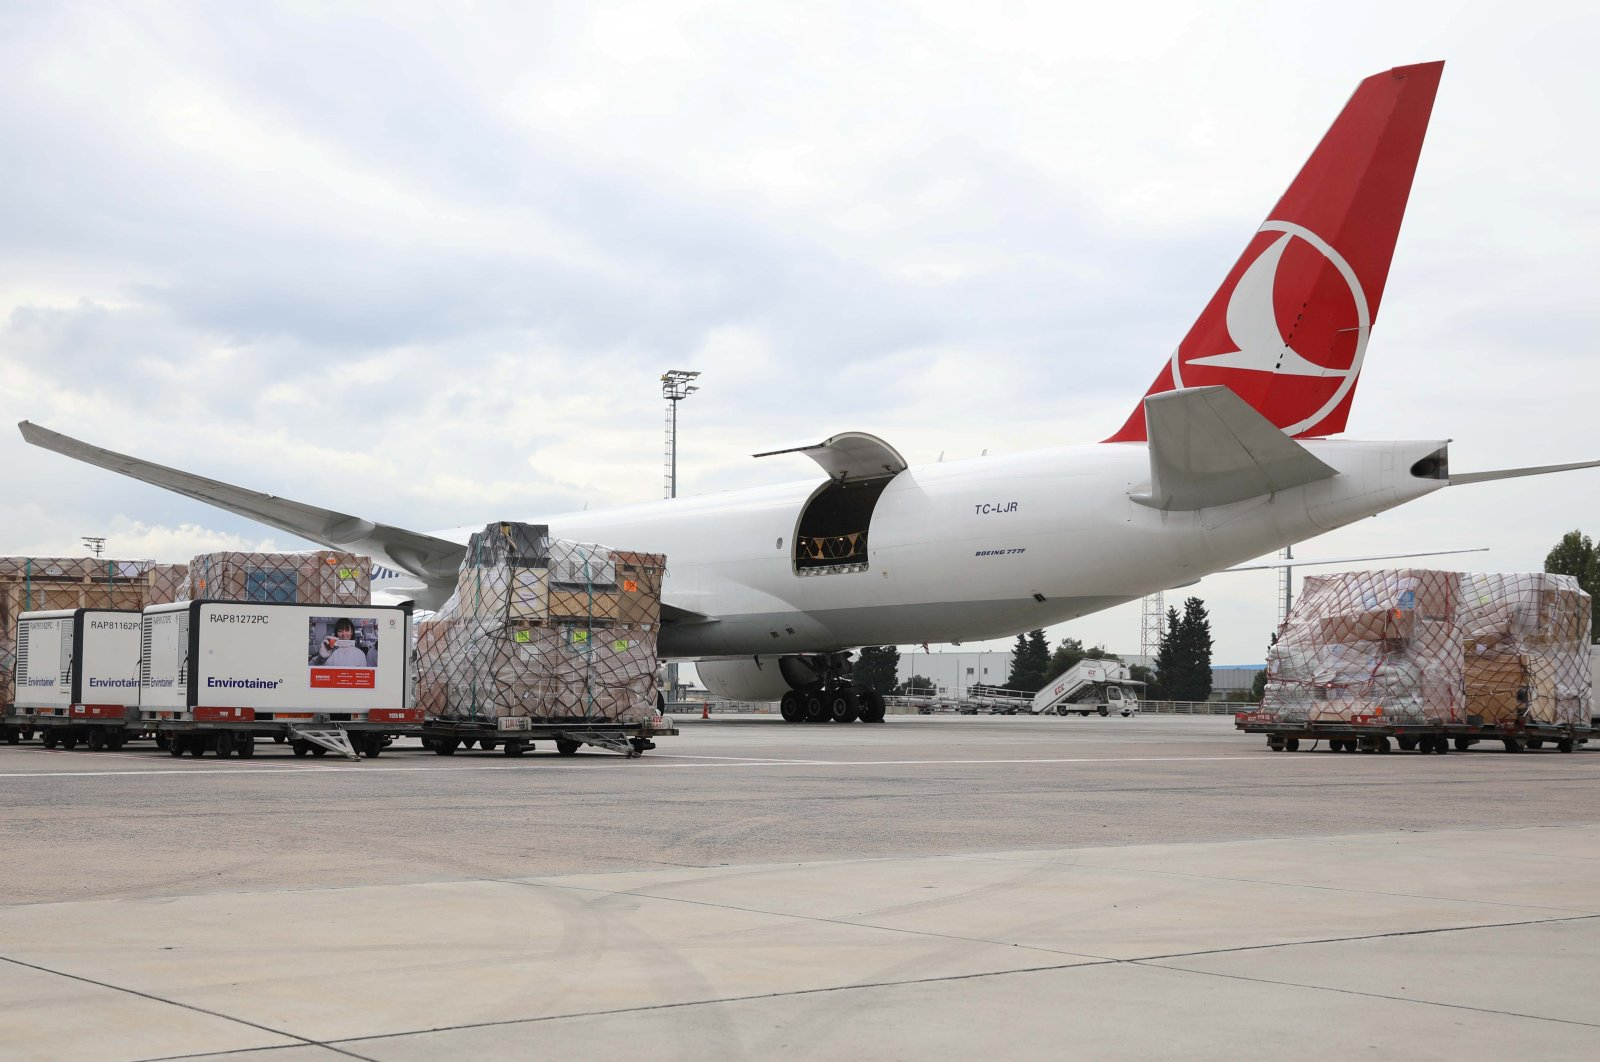 A Turkish Cargo plane is loaded with containers at Istanbul Airport, Istanbul, Turkey, Nov. 18, 2020. (Photo by Turkish Airlines via Reuters )